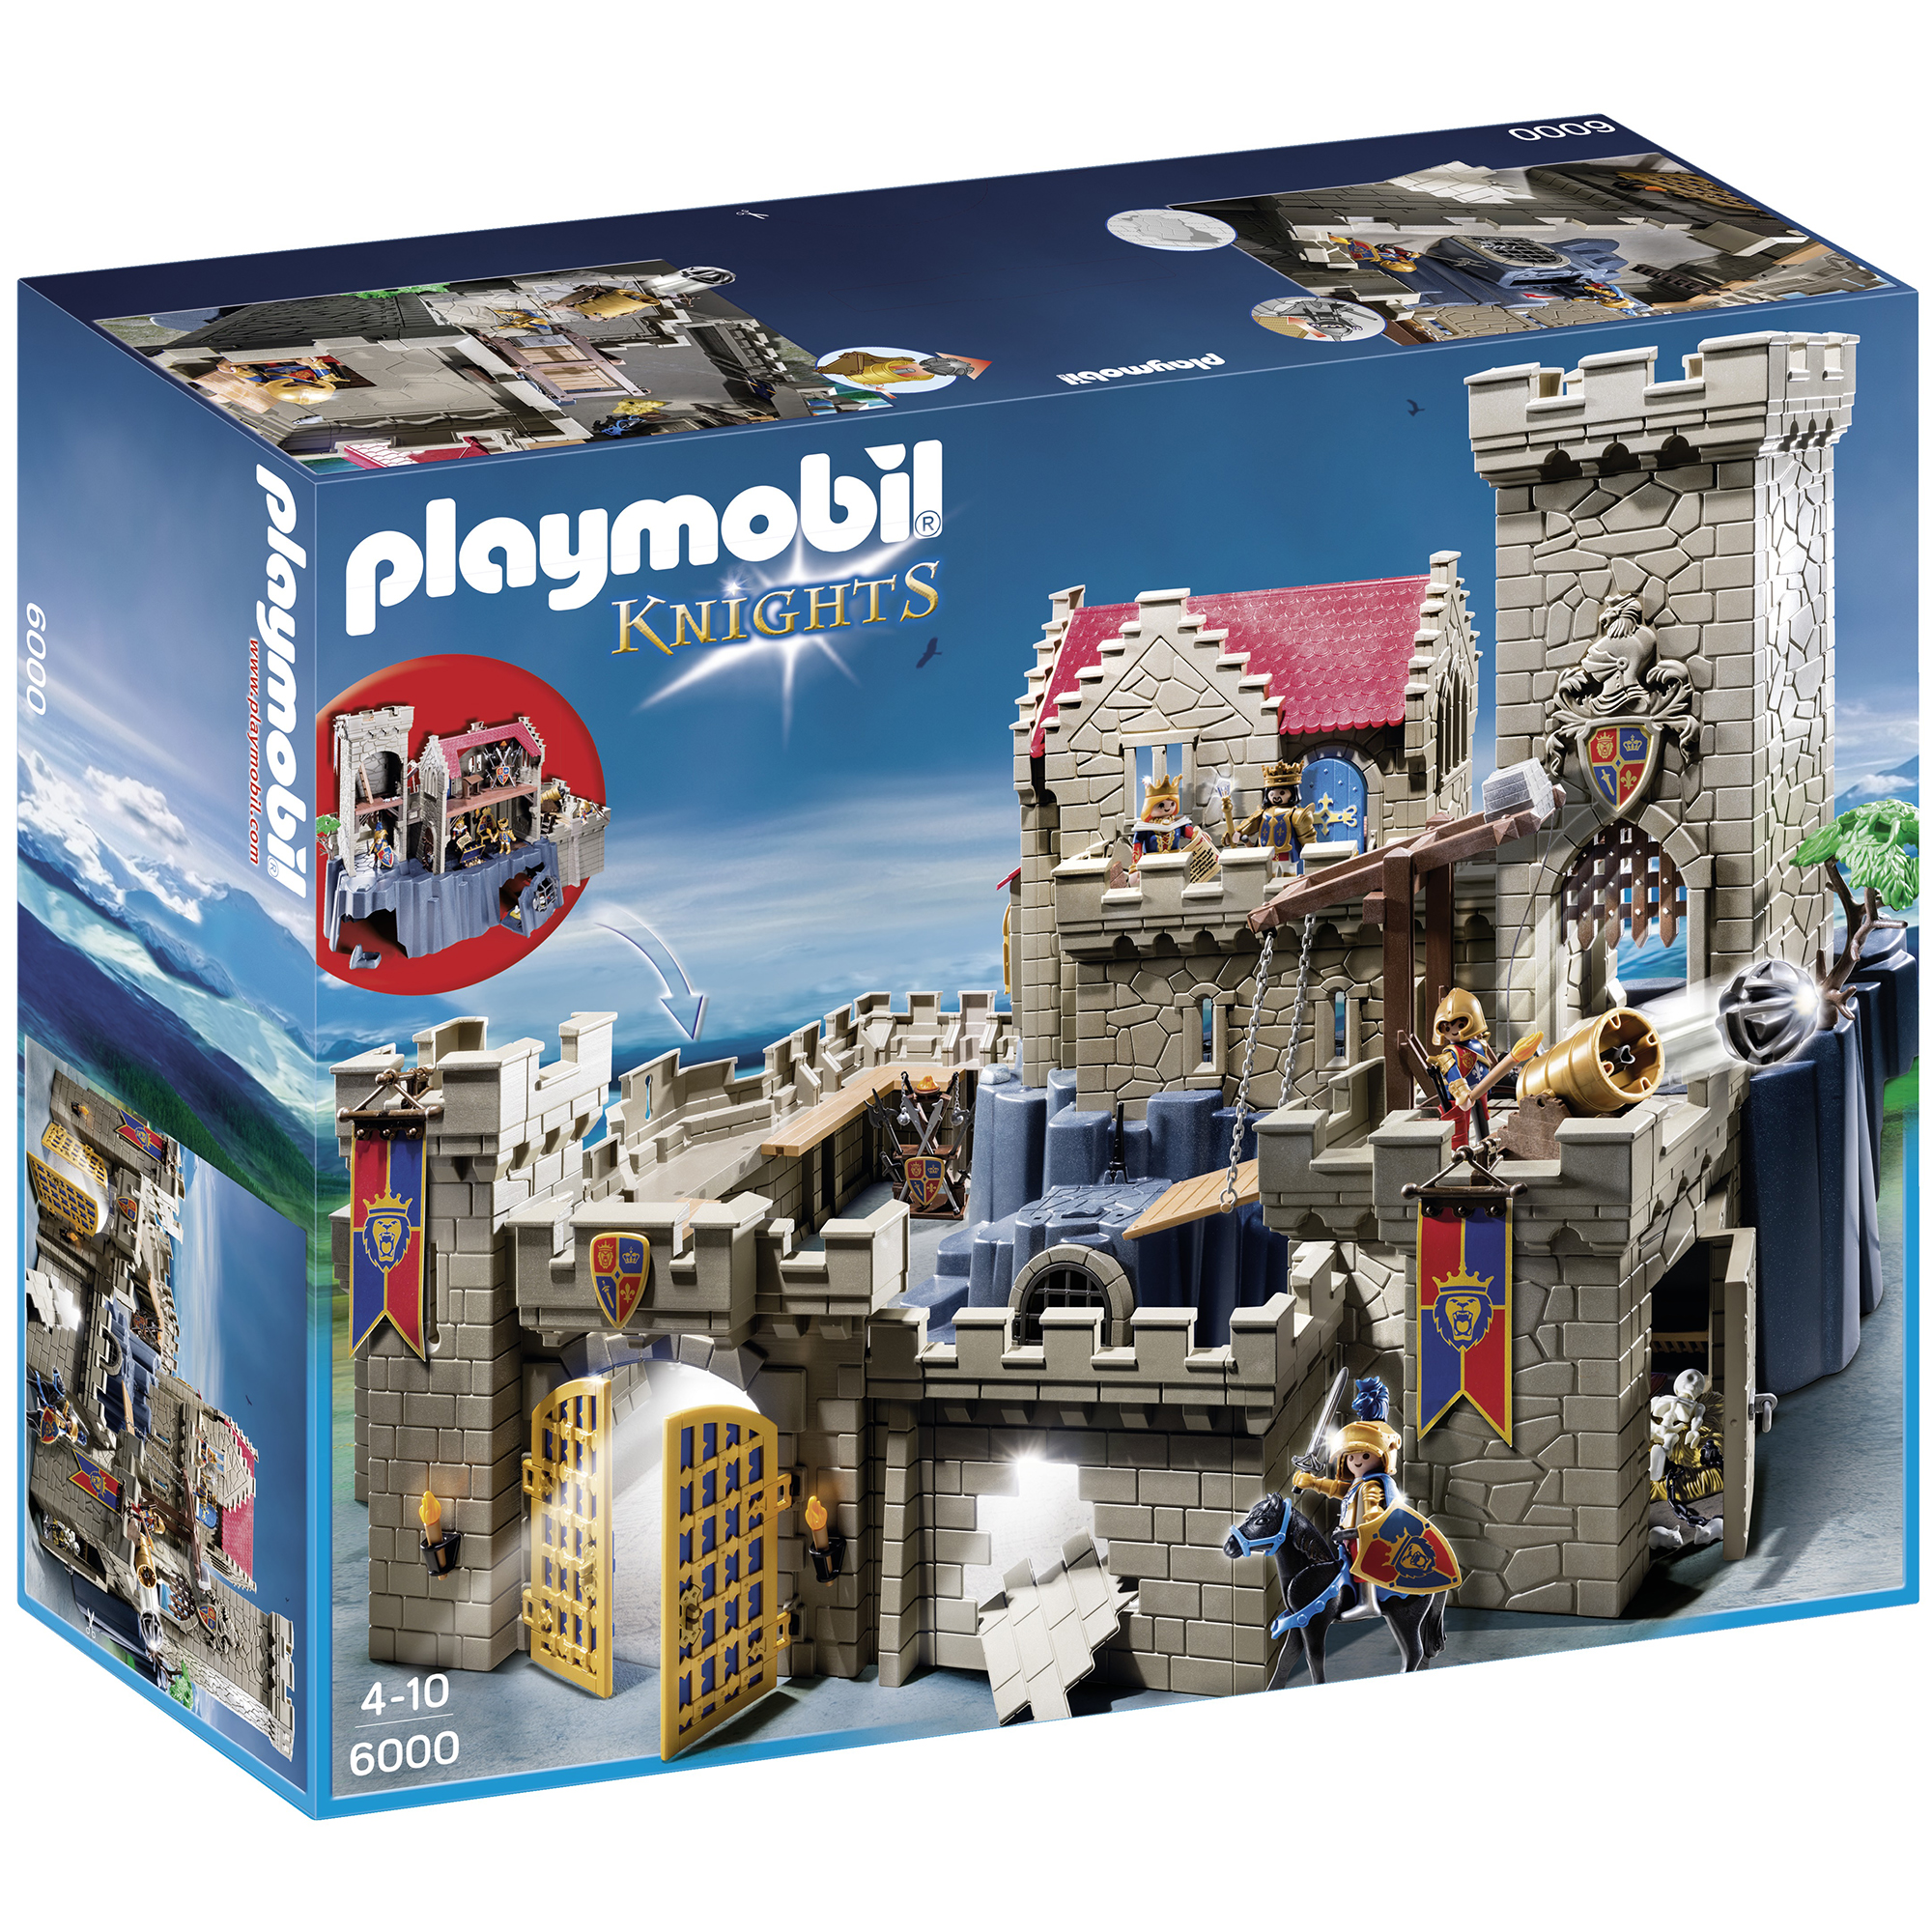 Playmobil Royal Lion Knight Castle 6000